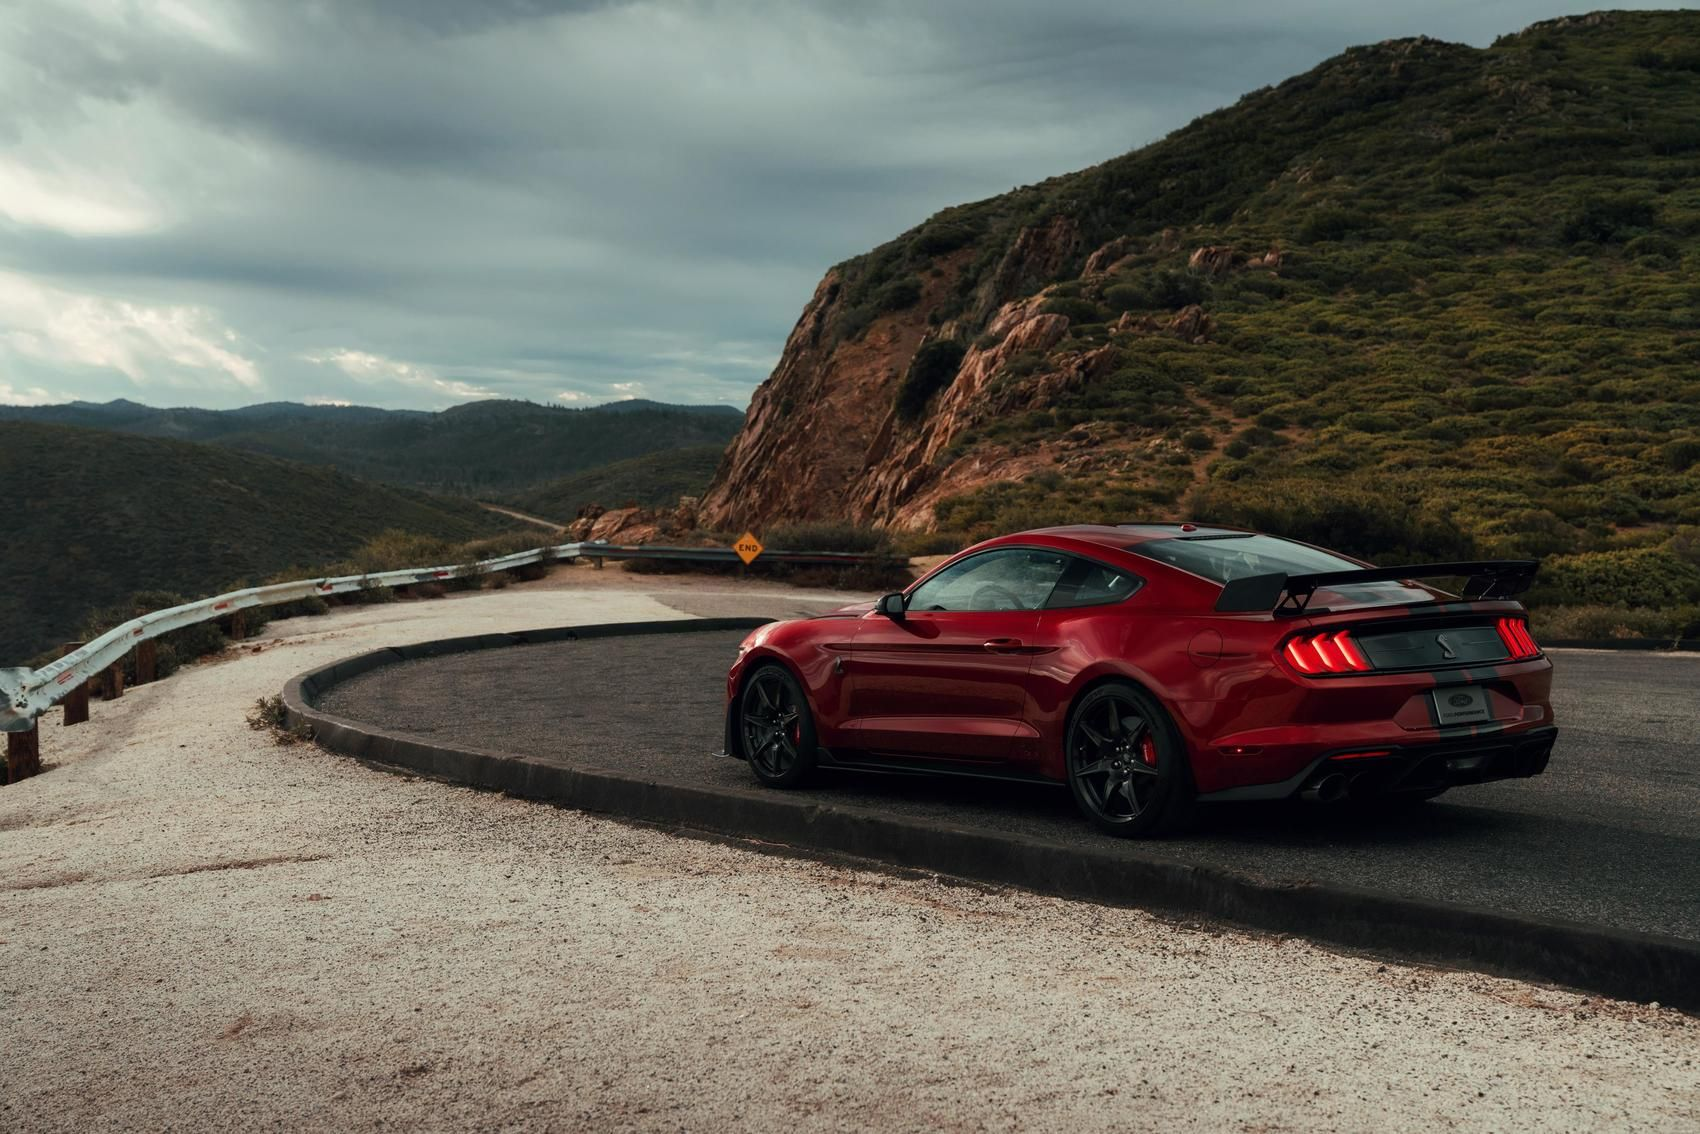 2020 Mustang Shelby Gt500 One Slick Snake Ford Mustang Shelby Gt500 Mustang Shelby